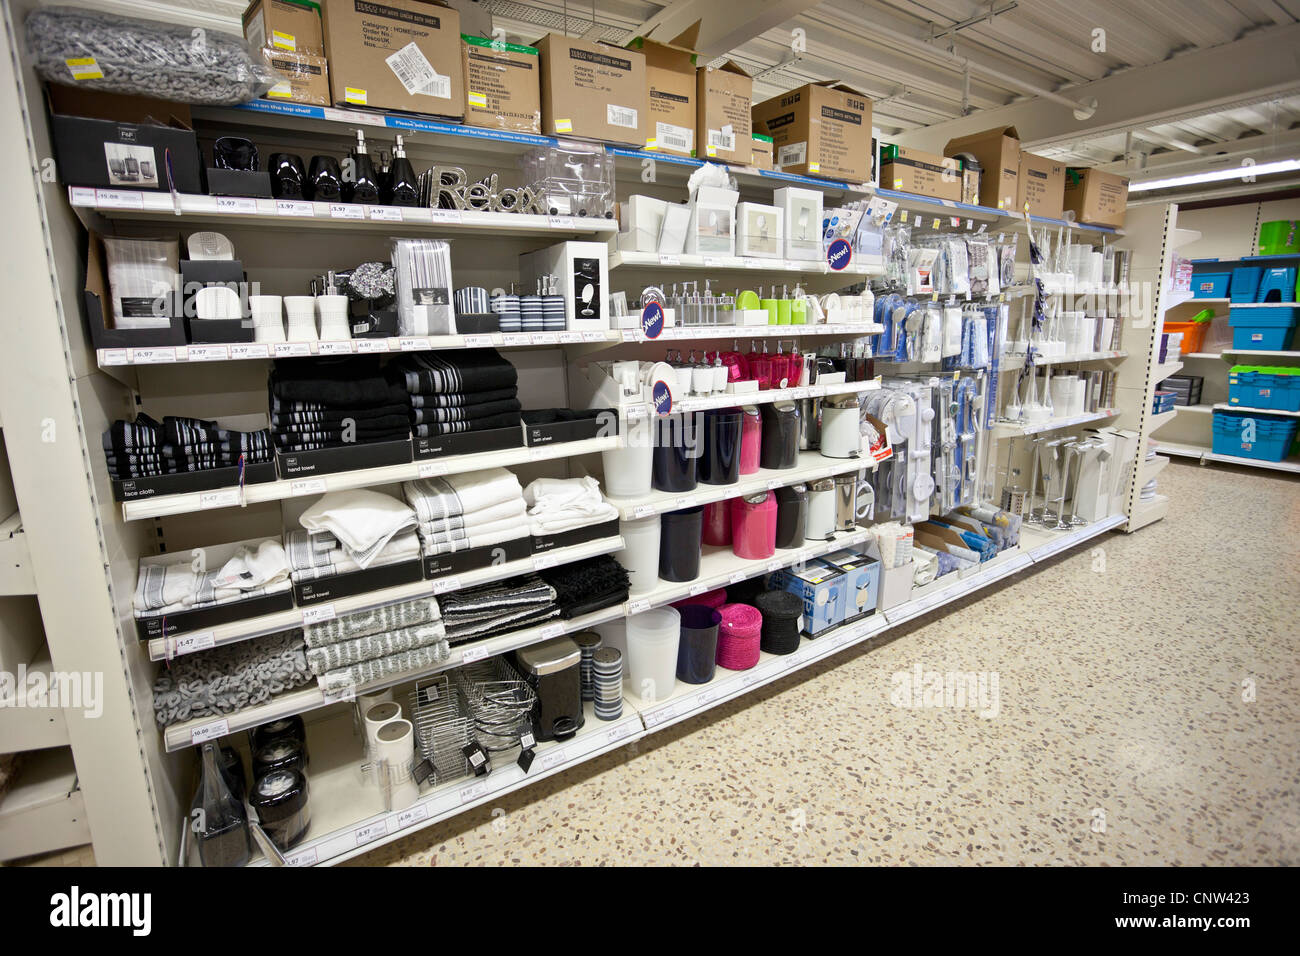 Bathroom Accessories And Toweling Shelves Of A Shop